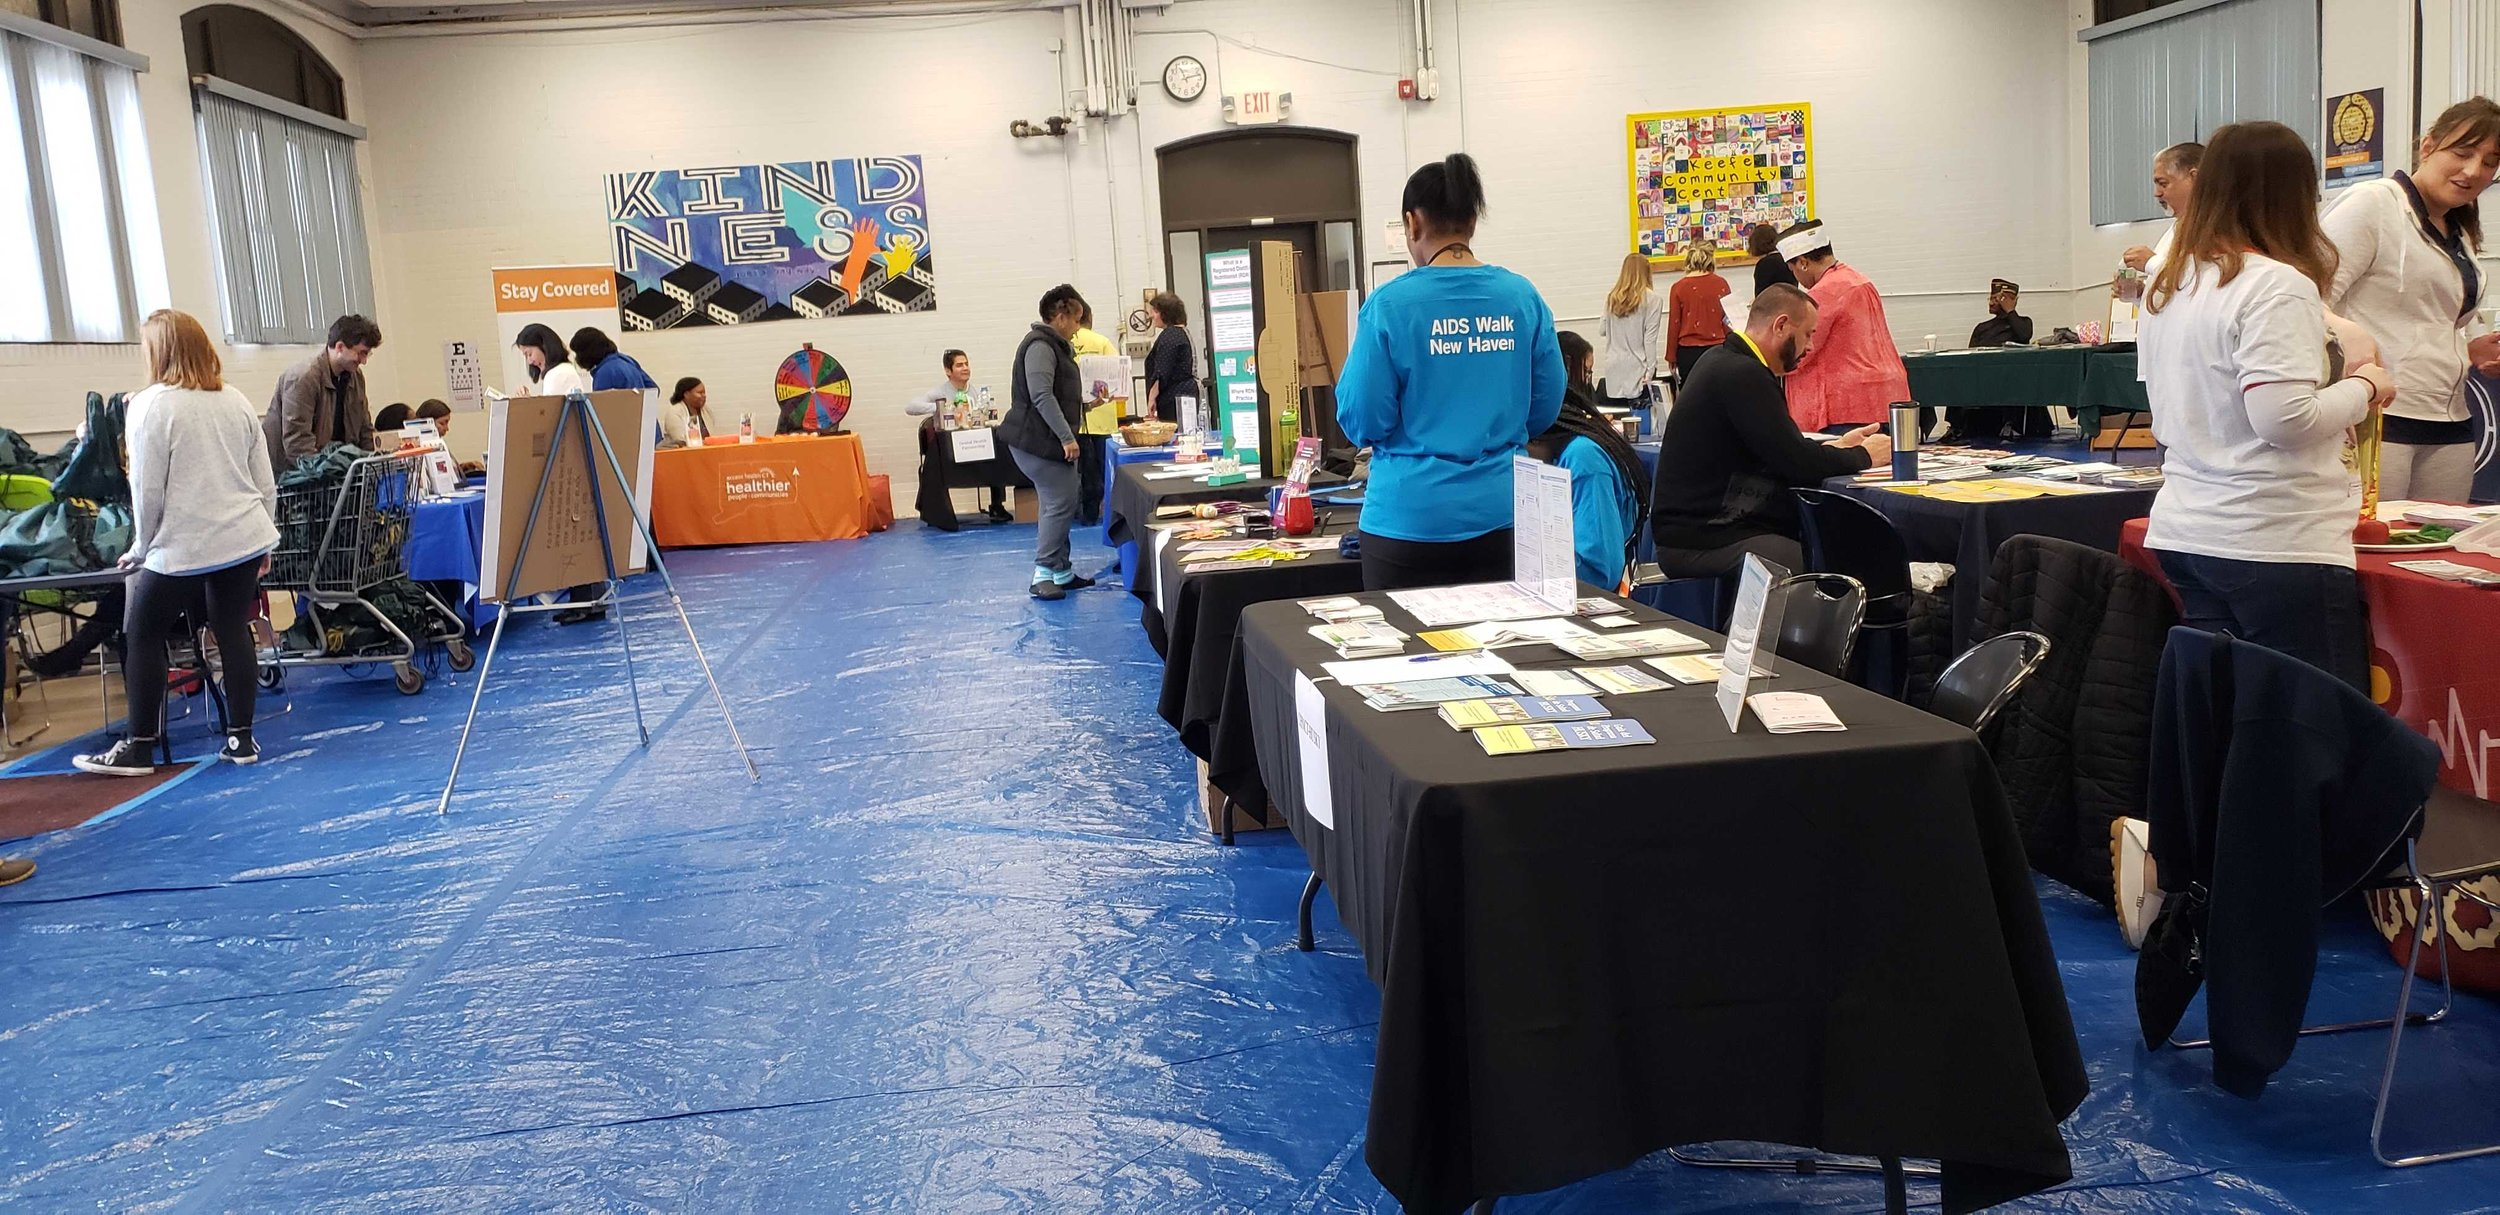 The Keefe Community Center held its first community fair Saturday. (Photo: Ross Lager)